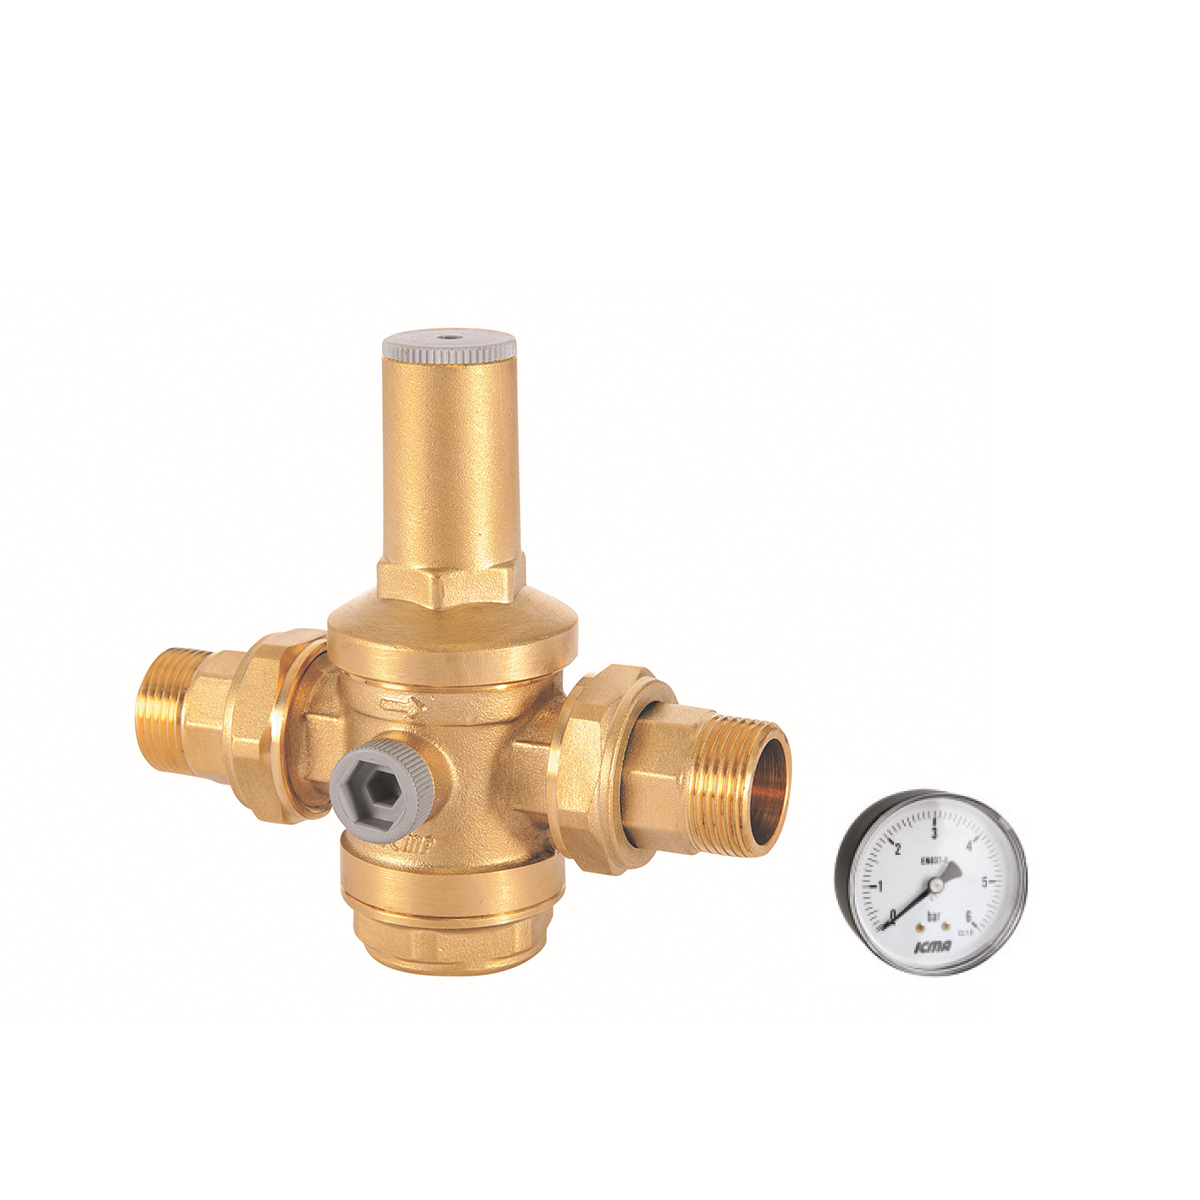 Pressure reducer with male tail connections.